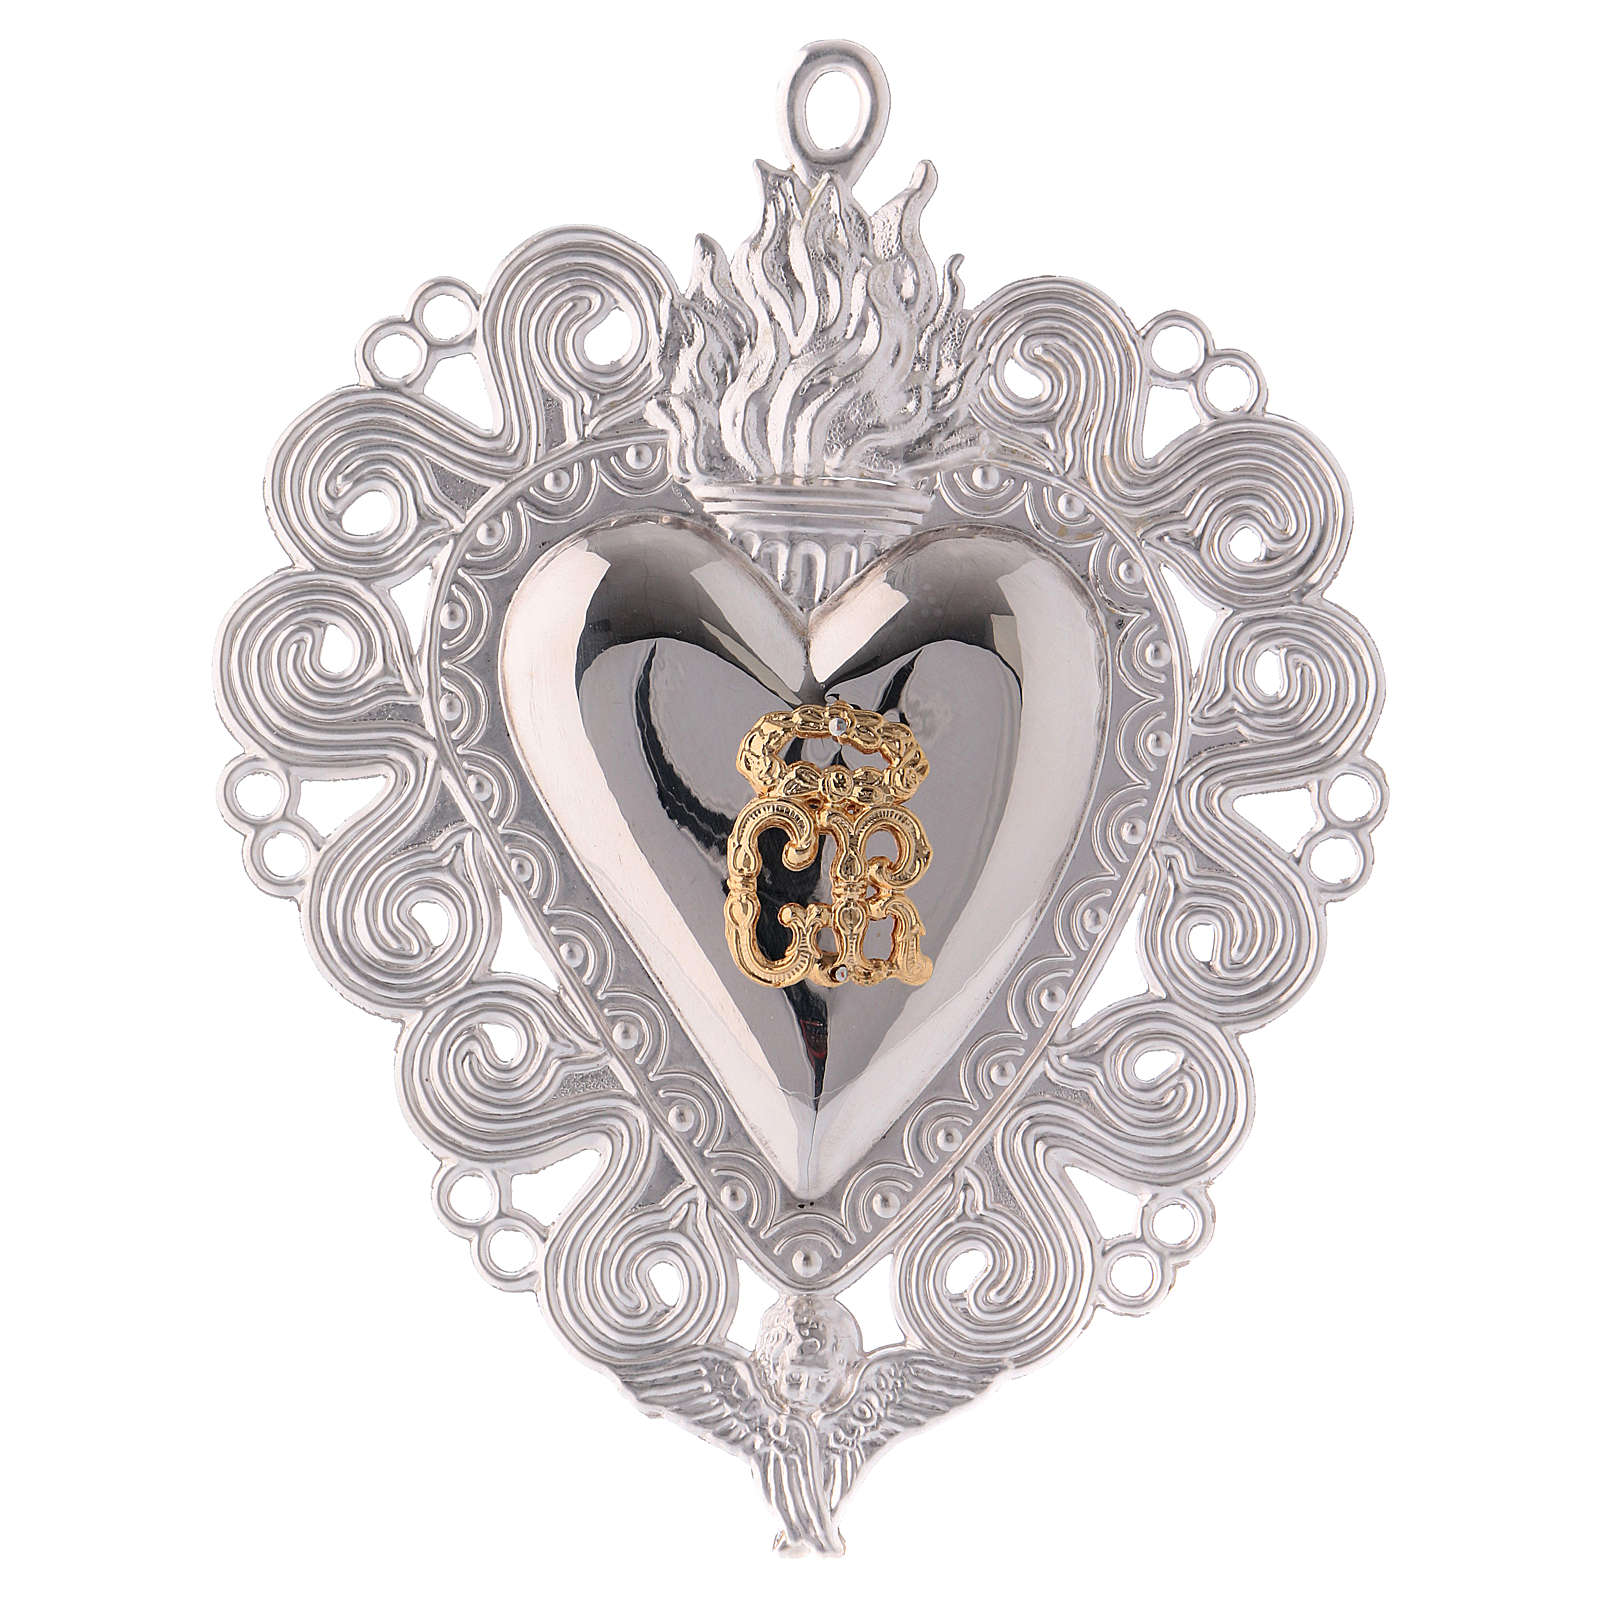 Ex-voto, Votive heart with flame and angel 15x11cm 3